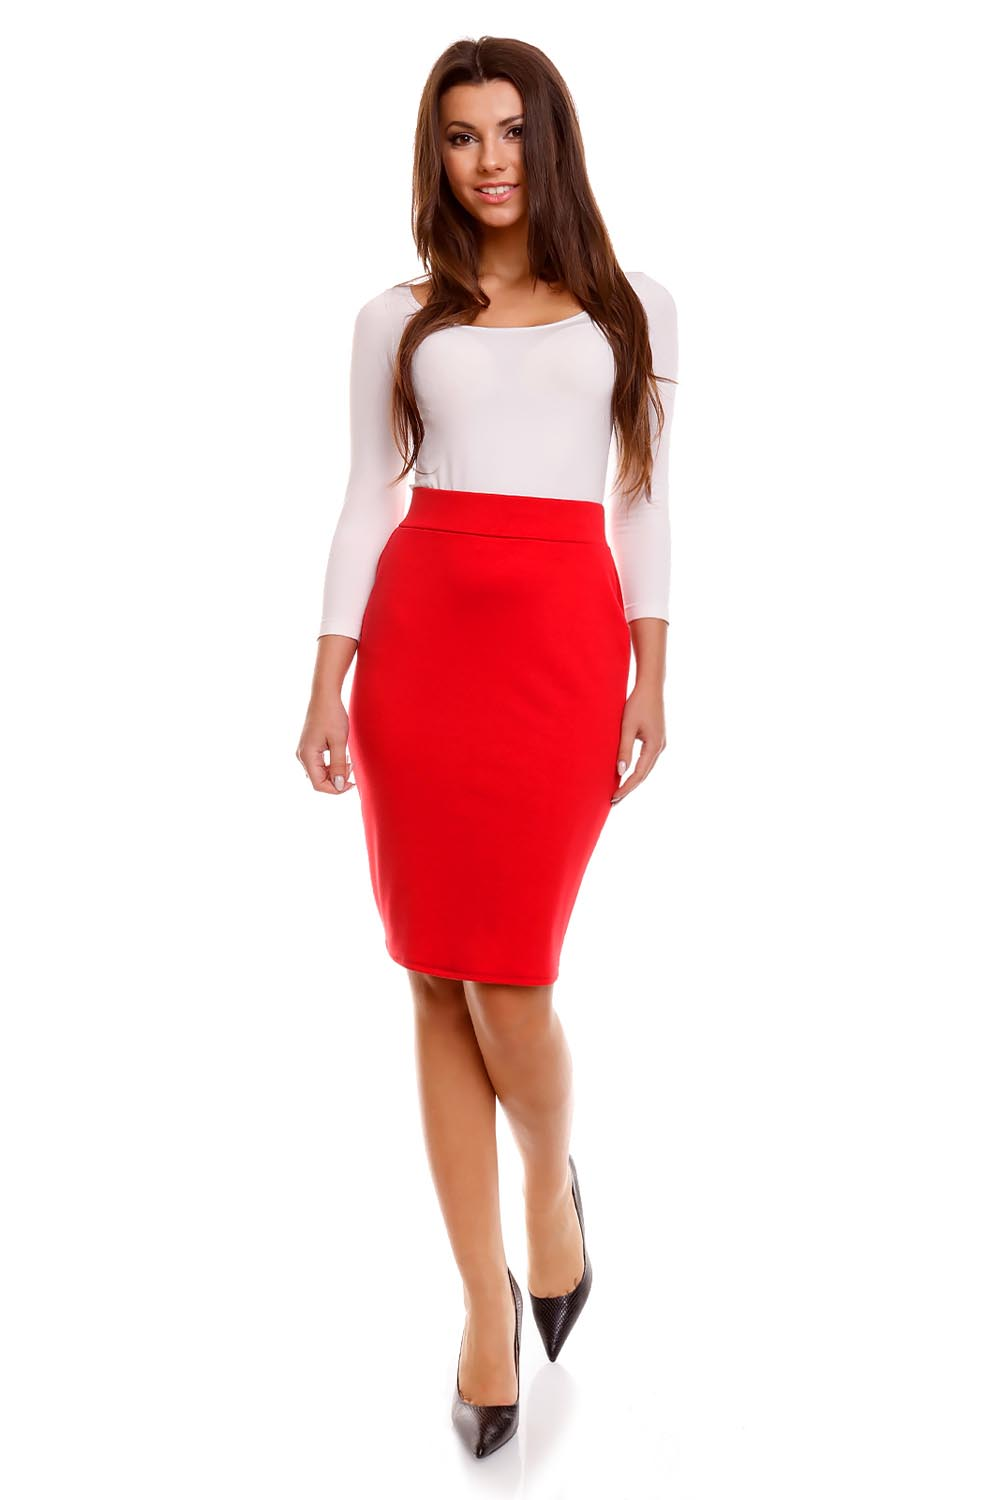 Red Pencil Skirt with Back Zipper Fastening